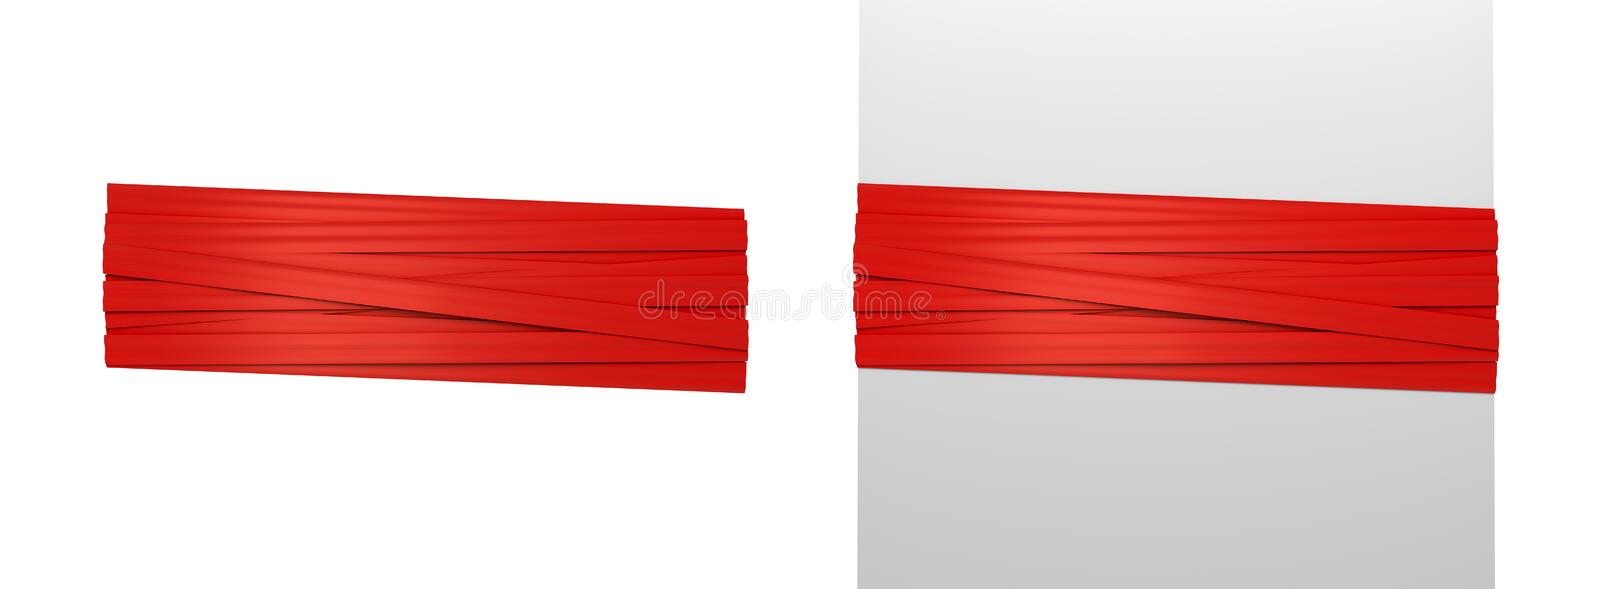 3d rendering of two wide red strips of gift ribbon tied around a white post and around empty space. stock illustration